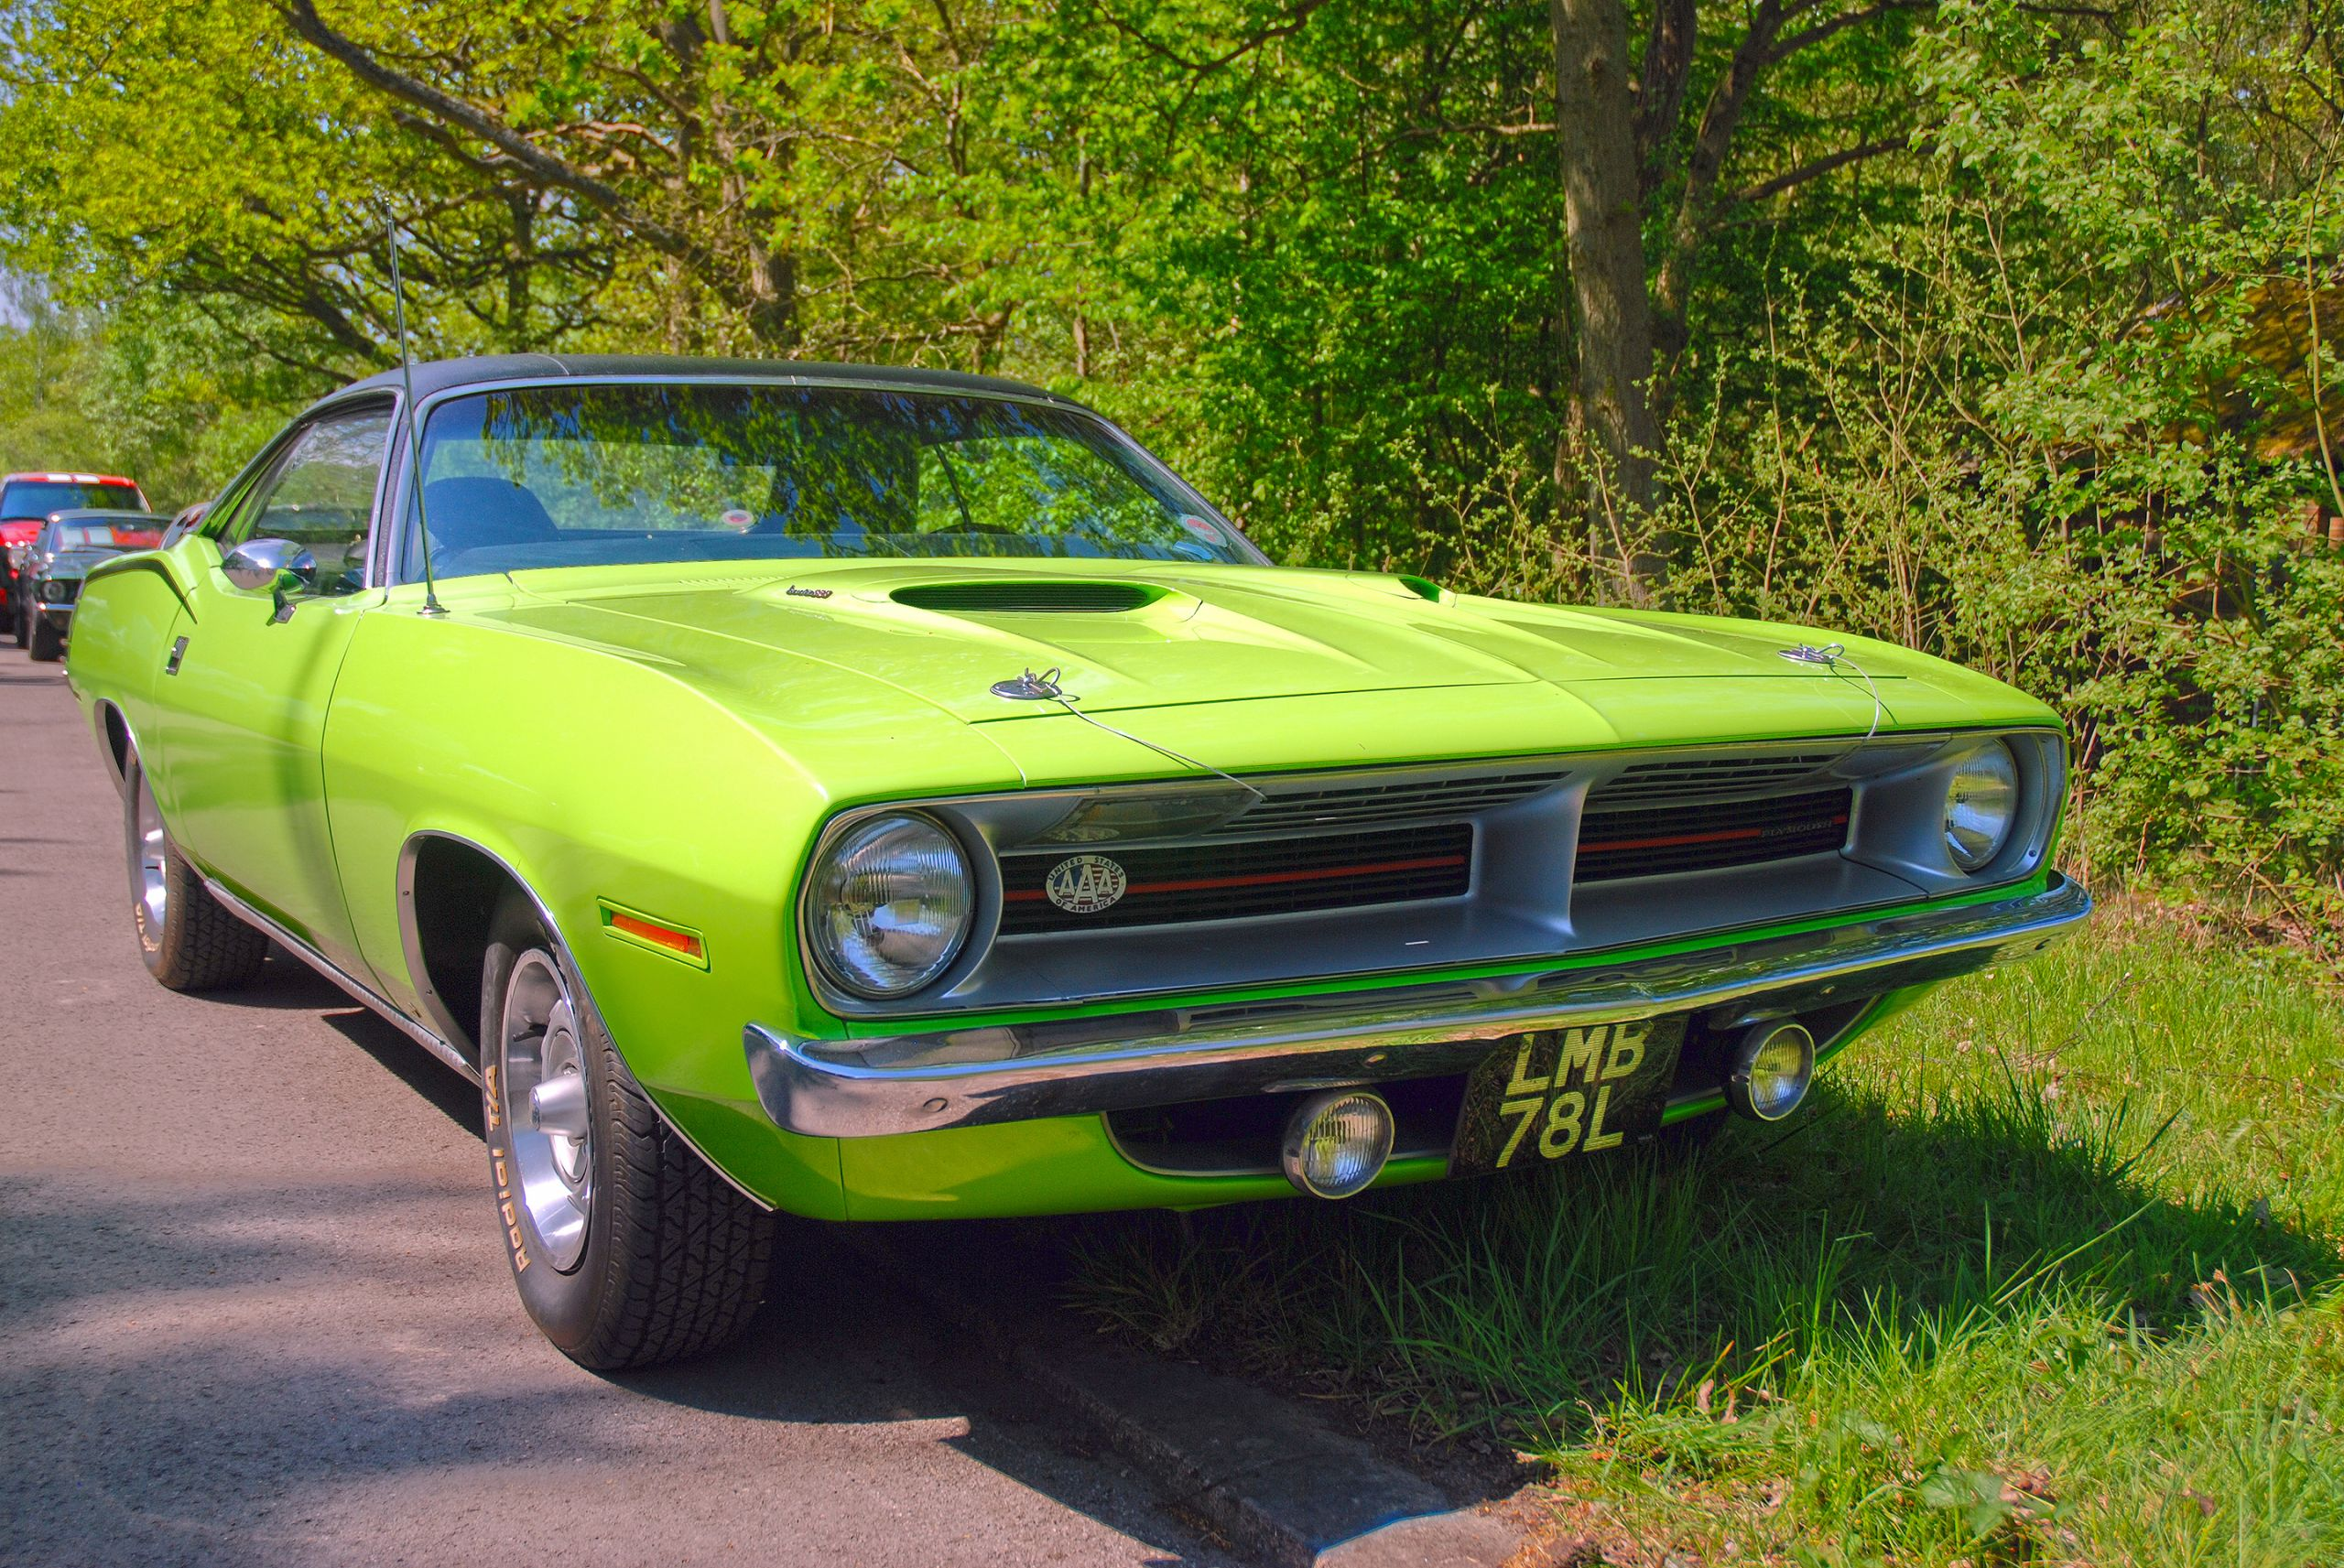 1970/1974 Plymouth Cuda TRIBUTE 440ci for sale - Plymouth